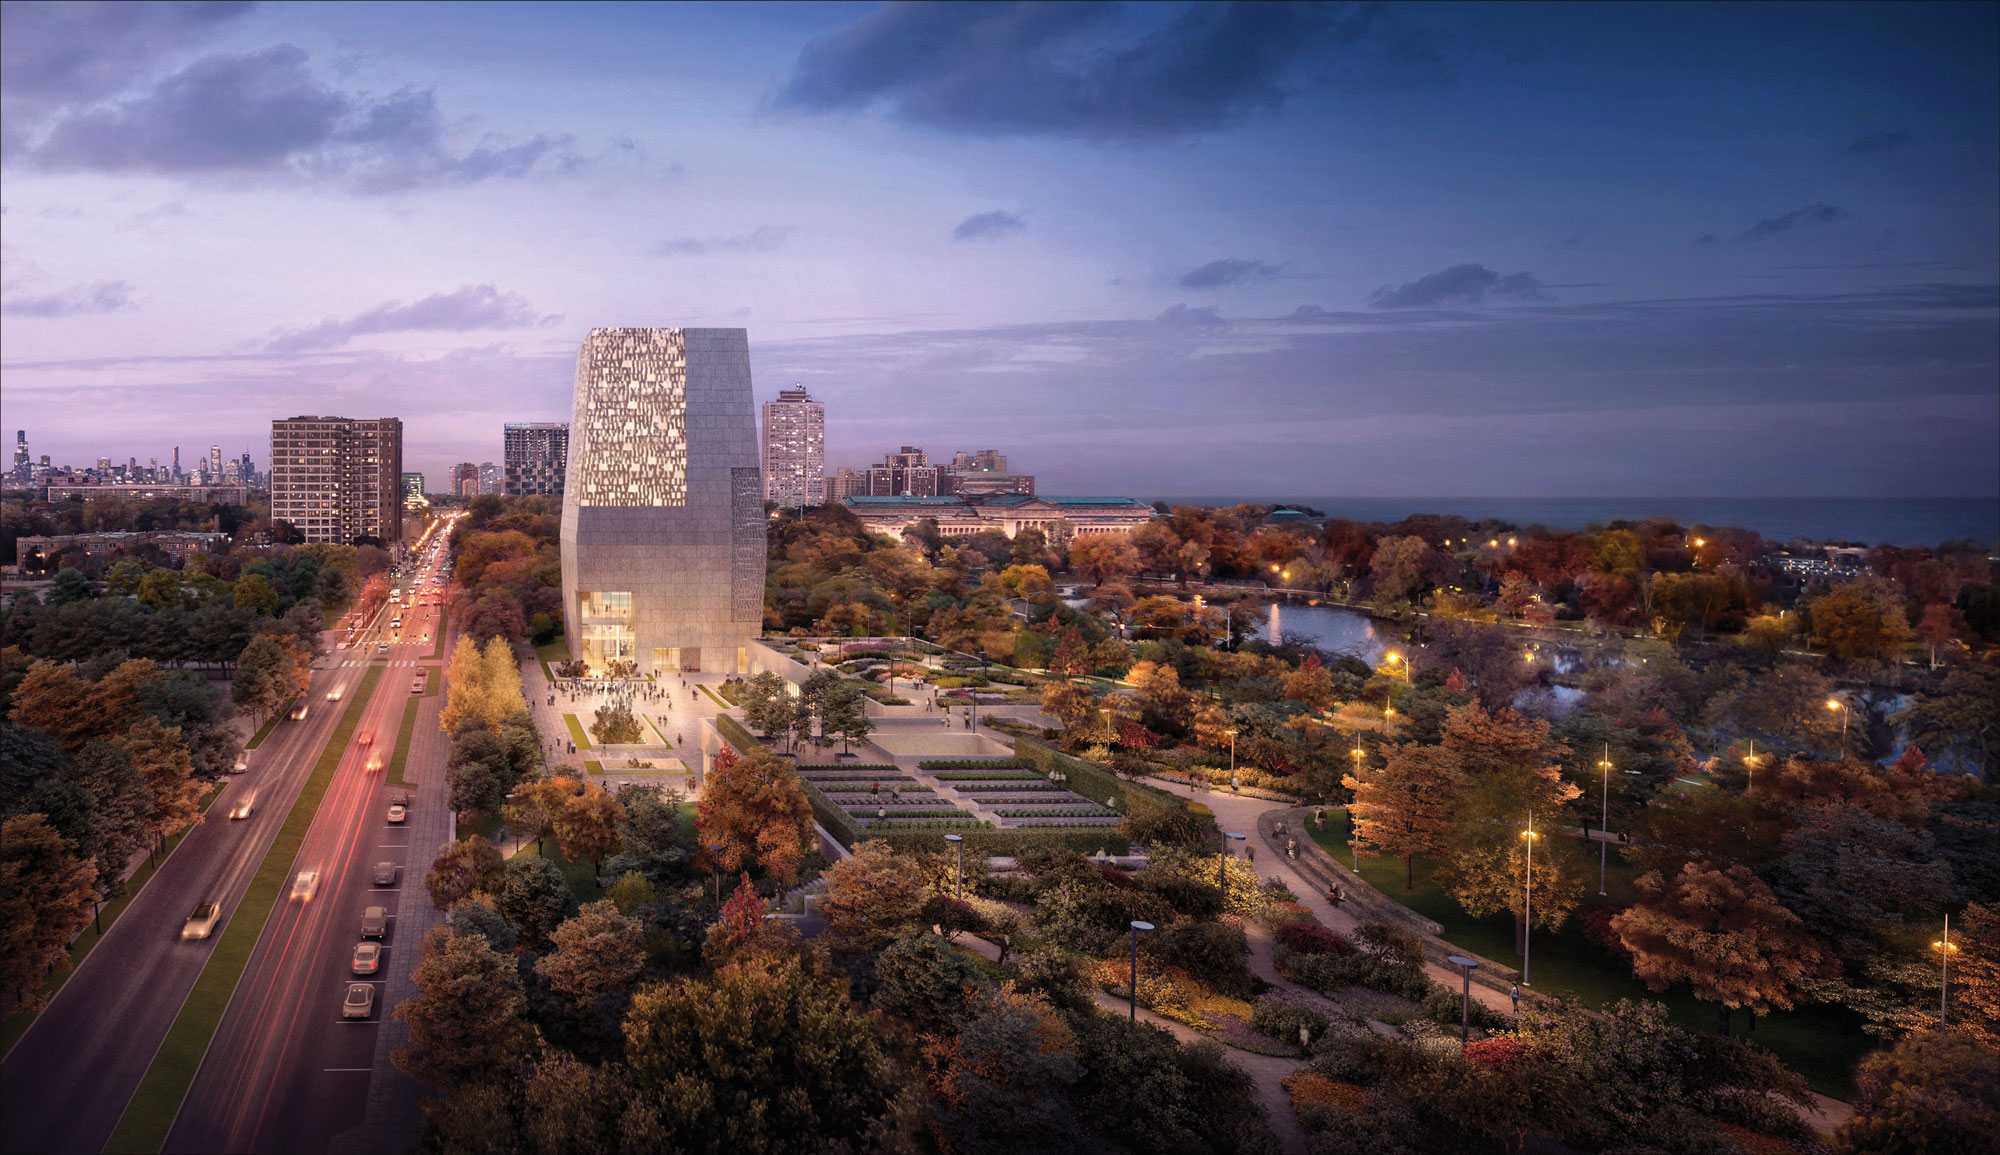 A rendering of the Obama Presidential Center at night.